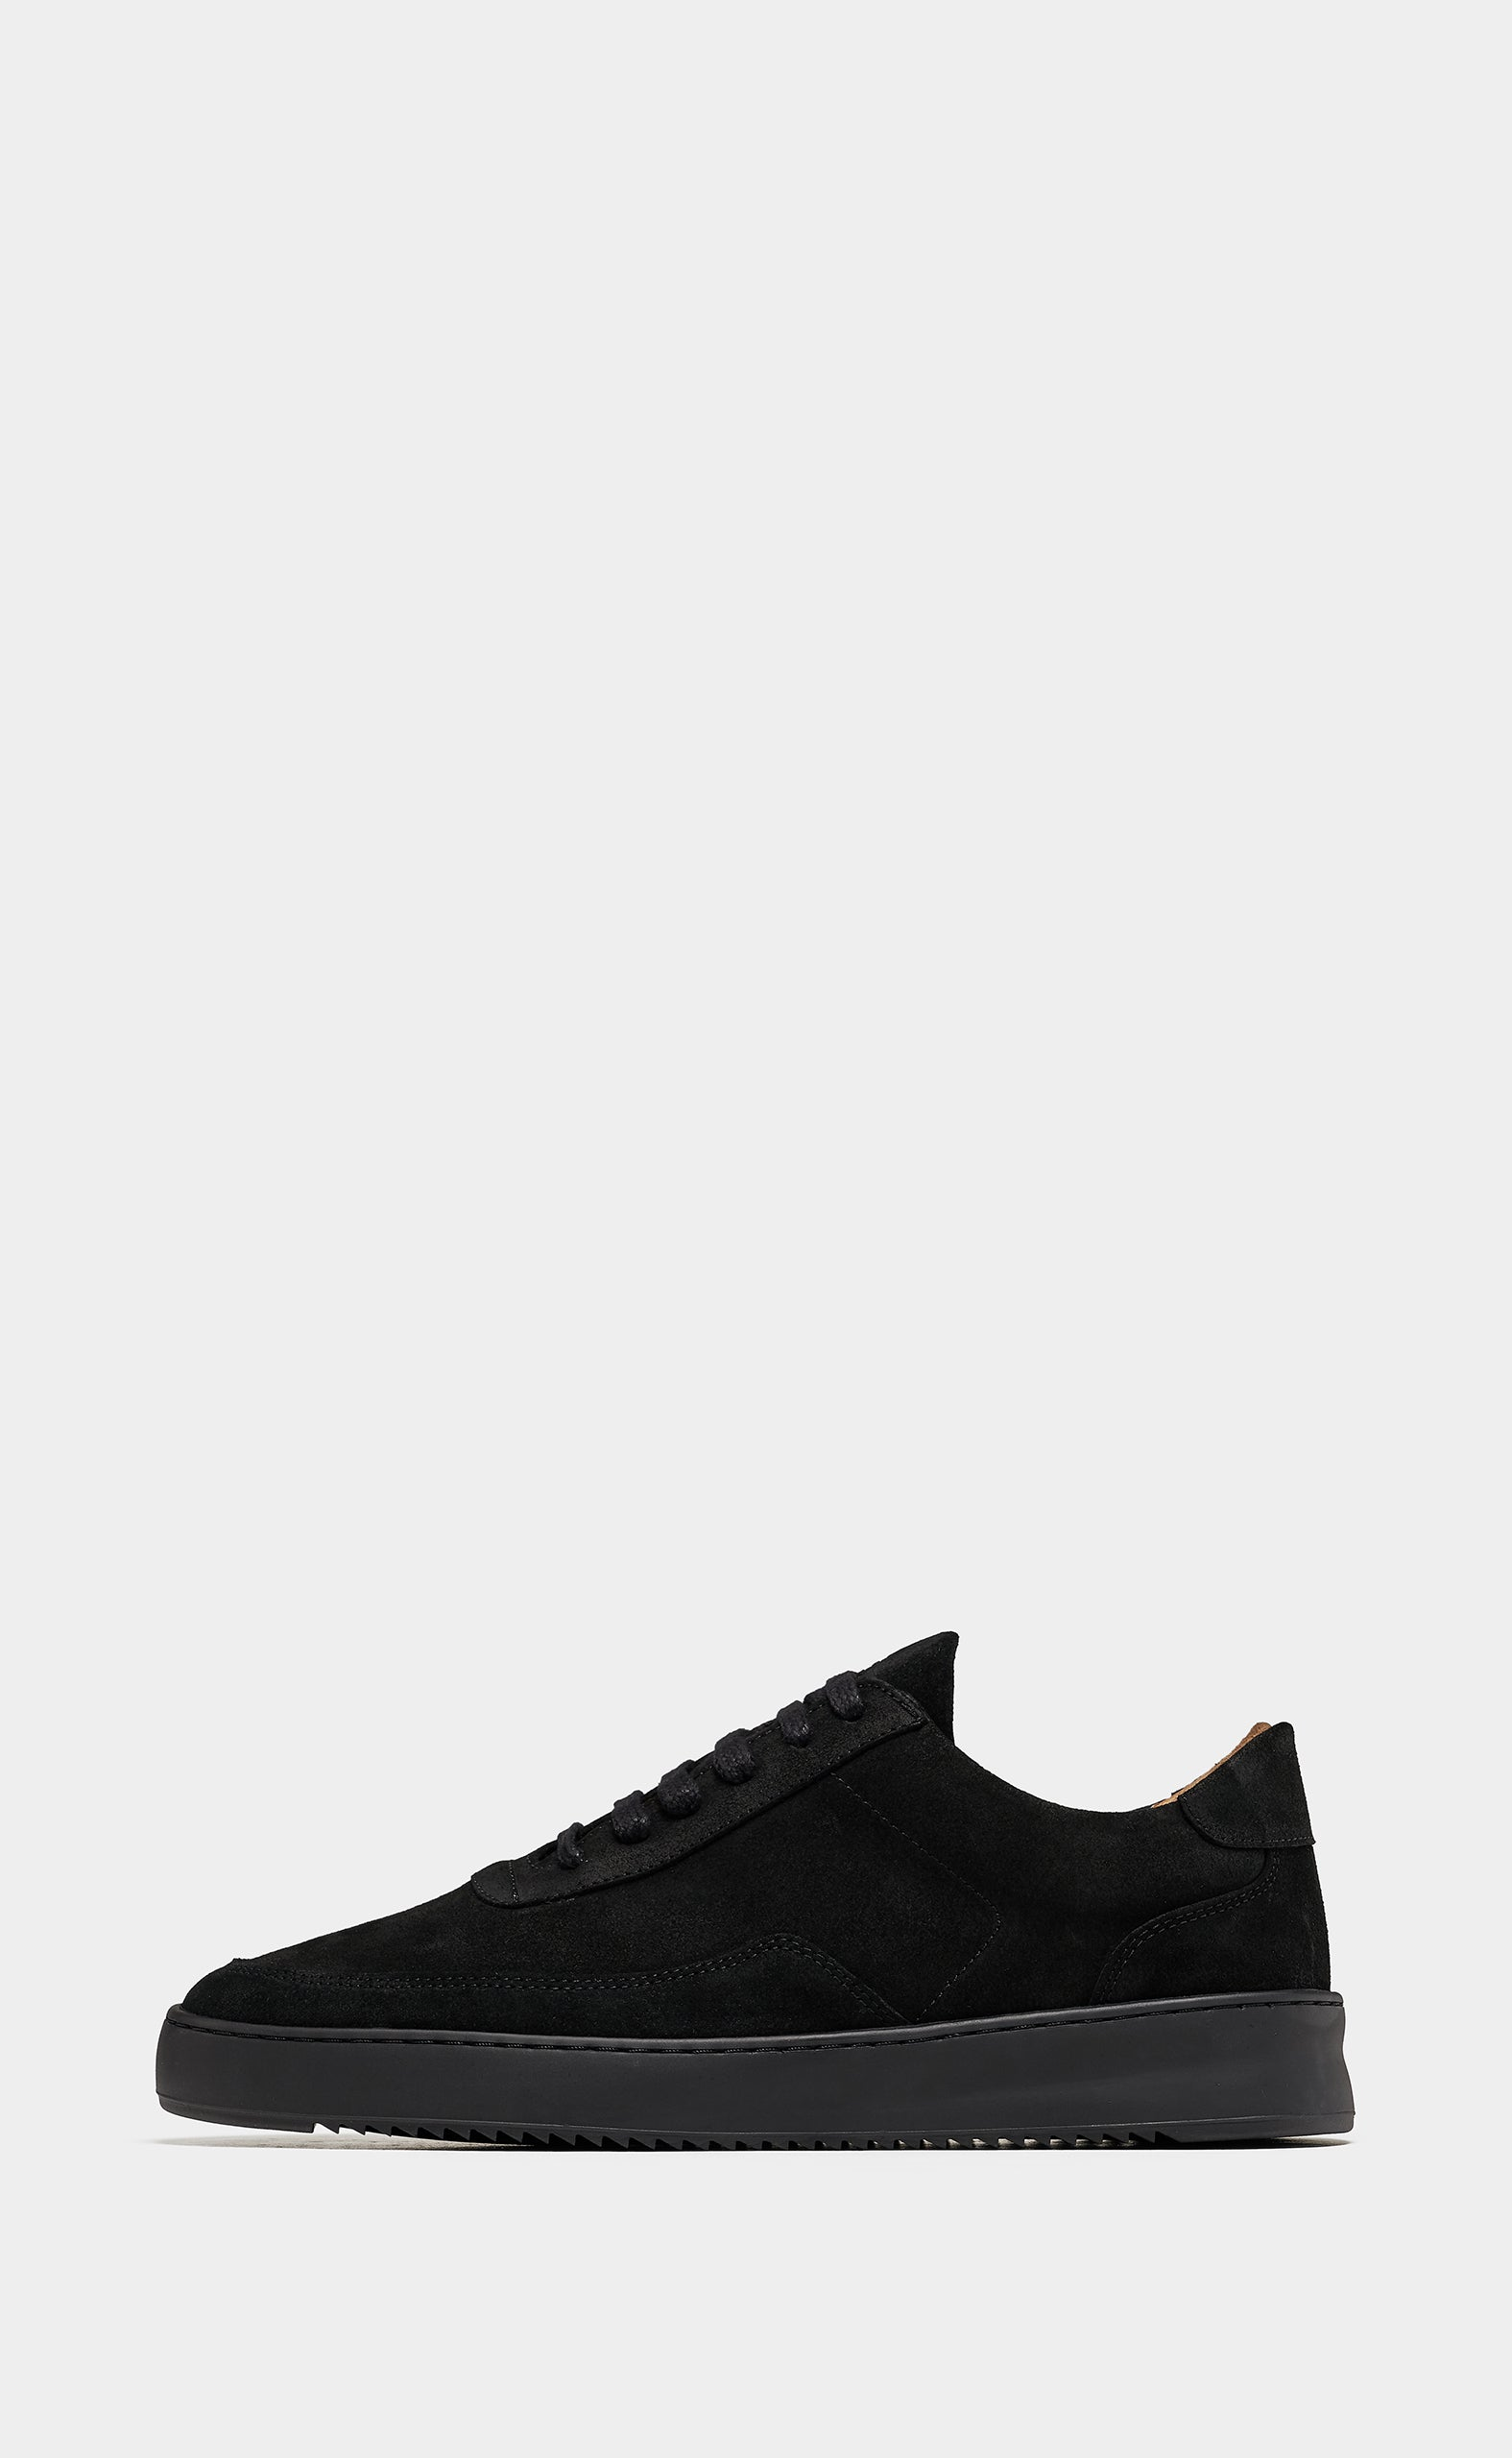 Low Mondo Ripple Nardo Suede All Black